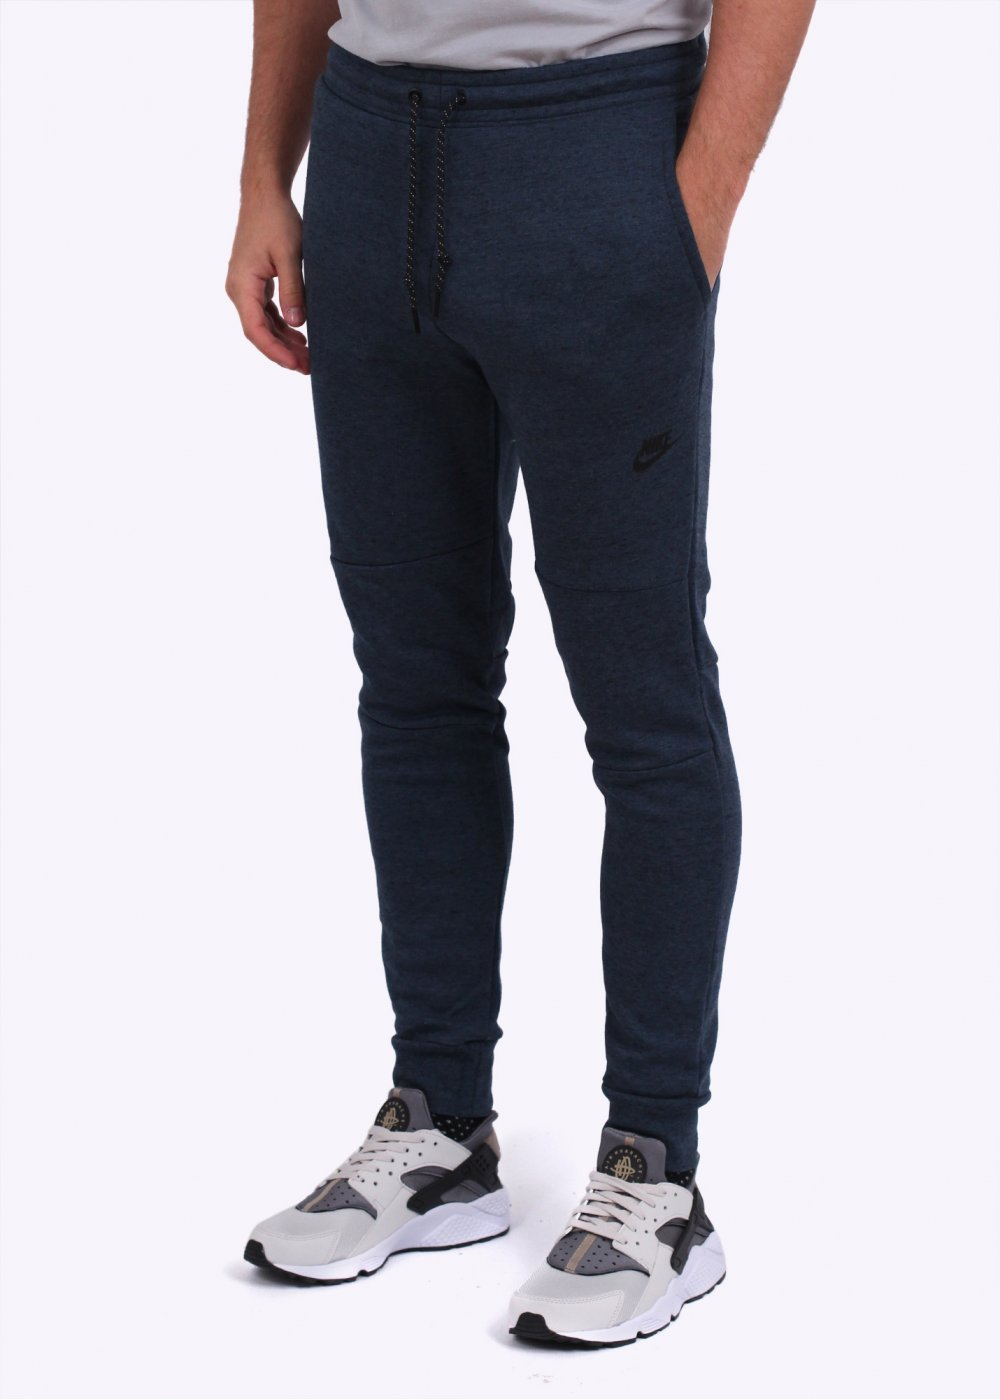 b0c19a2323ca Nike Tech Fleece Pant - Squadron Blue